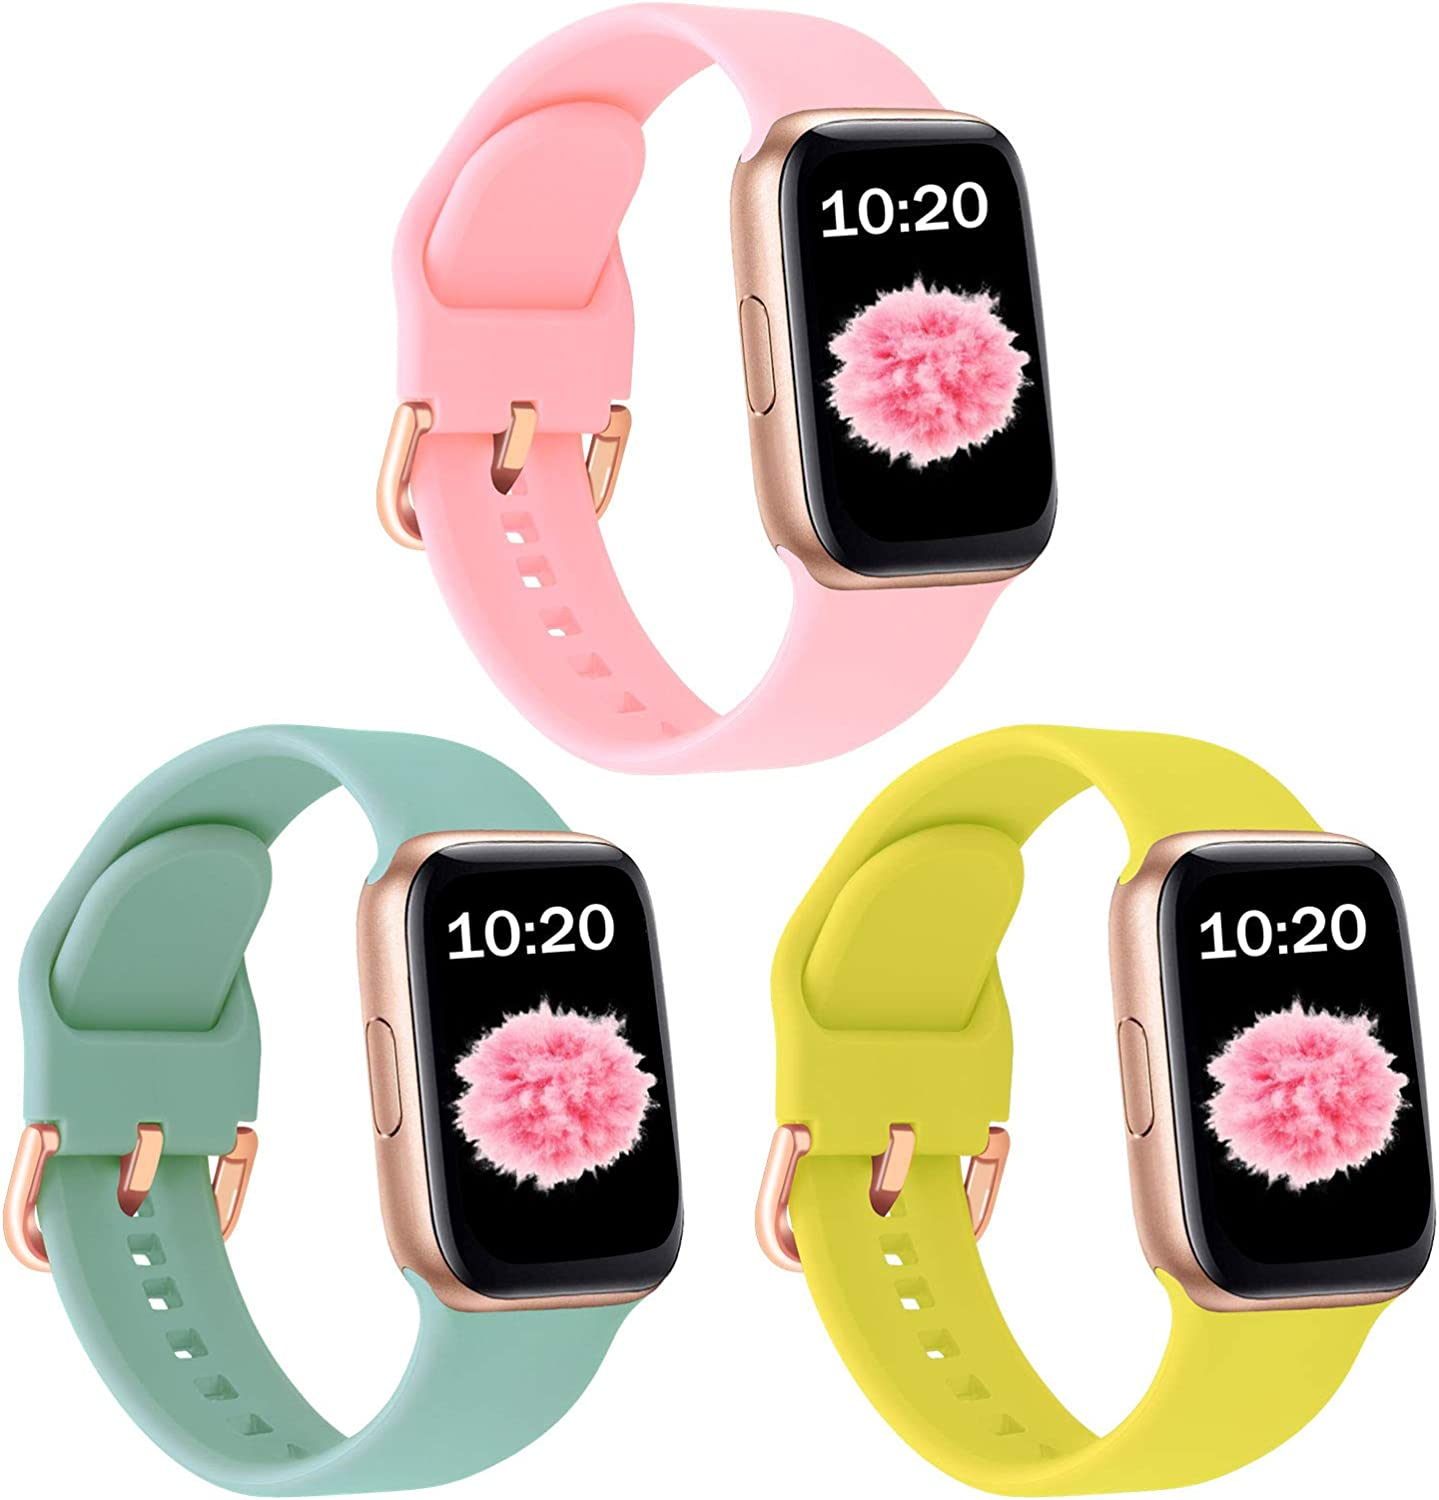 SinJonden 3-Pack Bands Compatible with Apple Watch 42mm 44mm 38mm 40mm, Silicone Bands with Rose Gold Buckle for iWatch Series SE/6/5/4/3/2/1 Women (38mm/40mm-M/L, Light Pink/Turquoise/Bright Yellow)